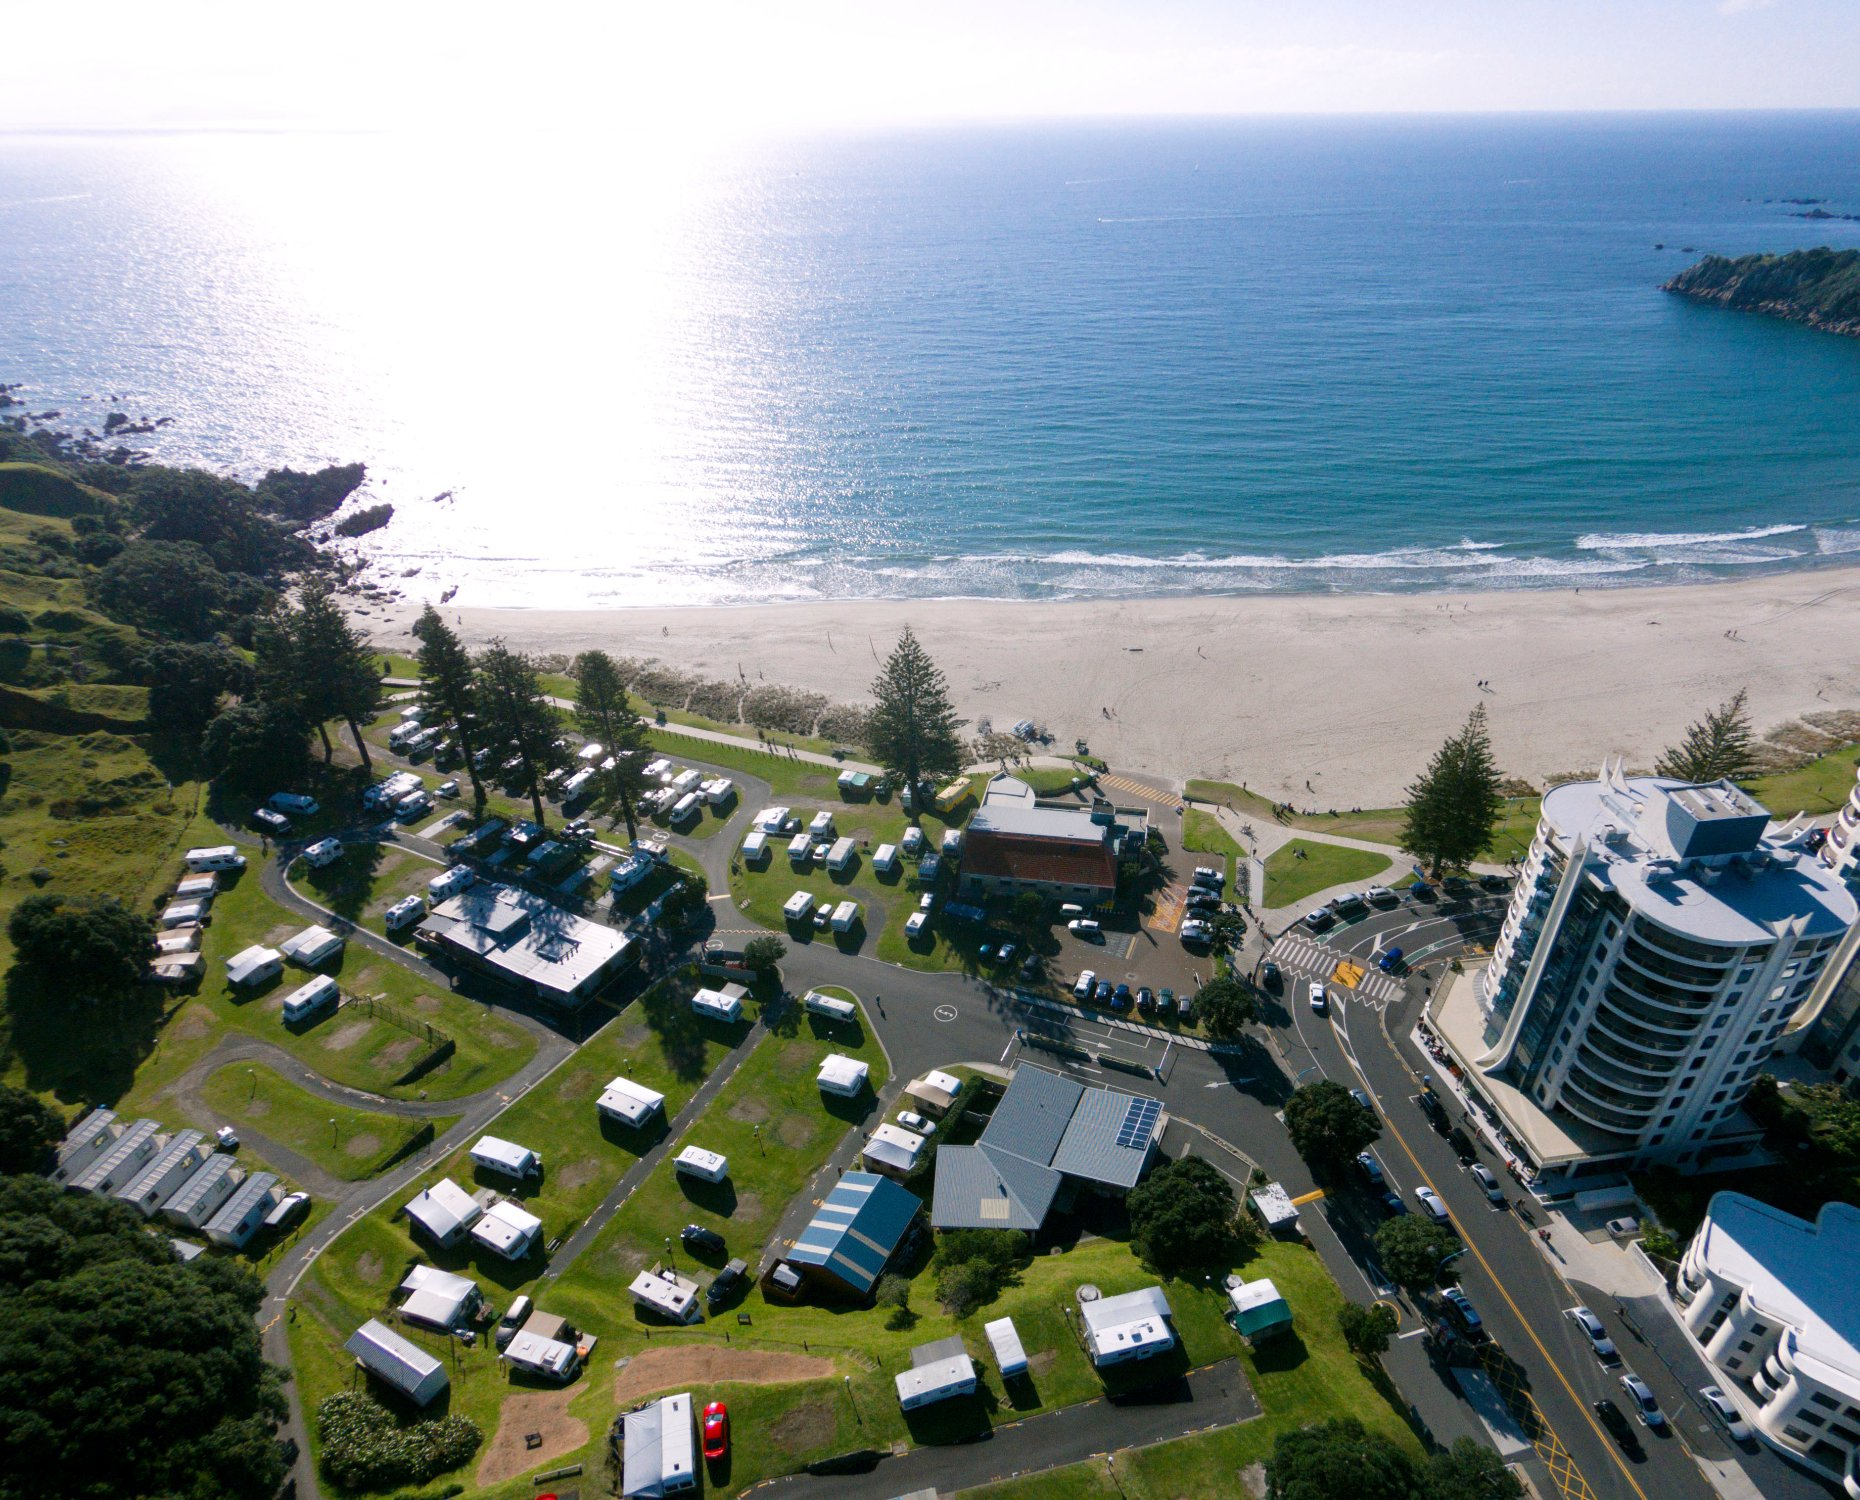 Mount Maunganui Beachside Holiday Park